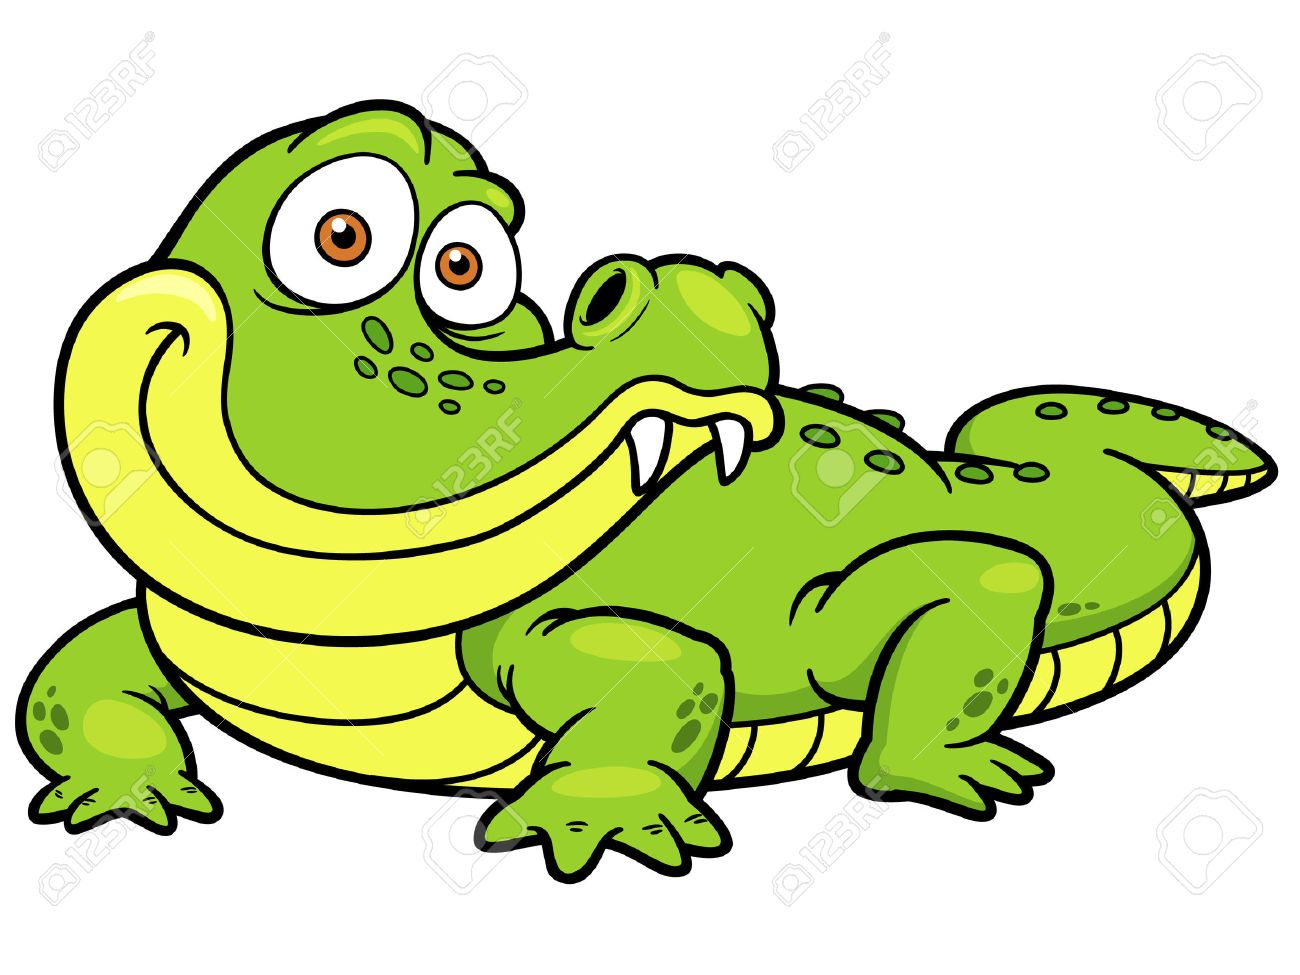 vector illustration of cartoon crocodile royalty free cliparts rh 123rf com crocodile clip art black and white crocodile clipart image